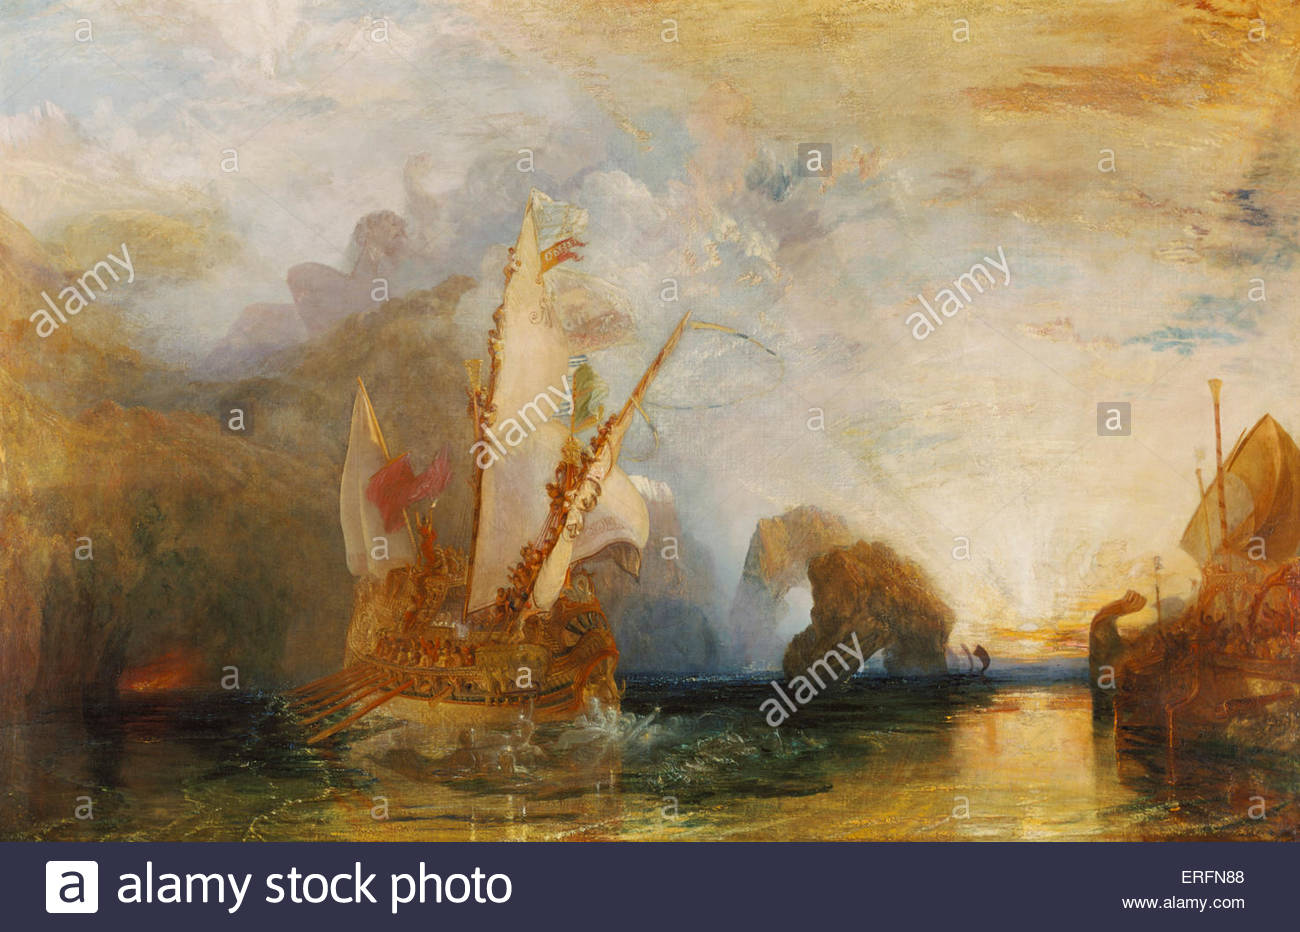 Ulysses deriding Polyphemus - Homer's Odyssey by Joseph Mallord William Turner, 1829 Painting. English painter, - Stock Image